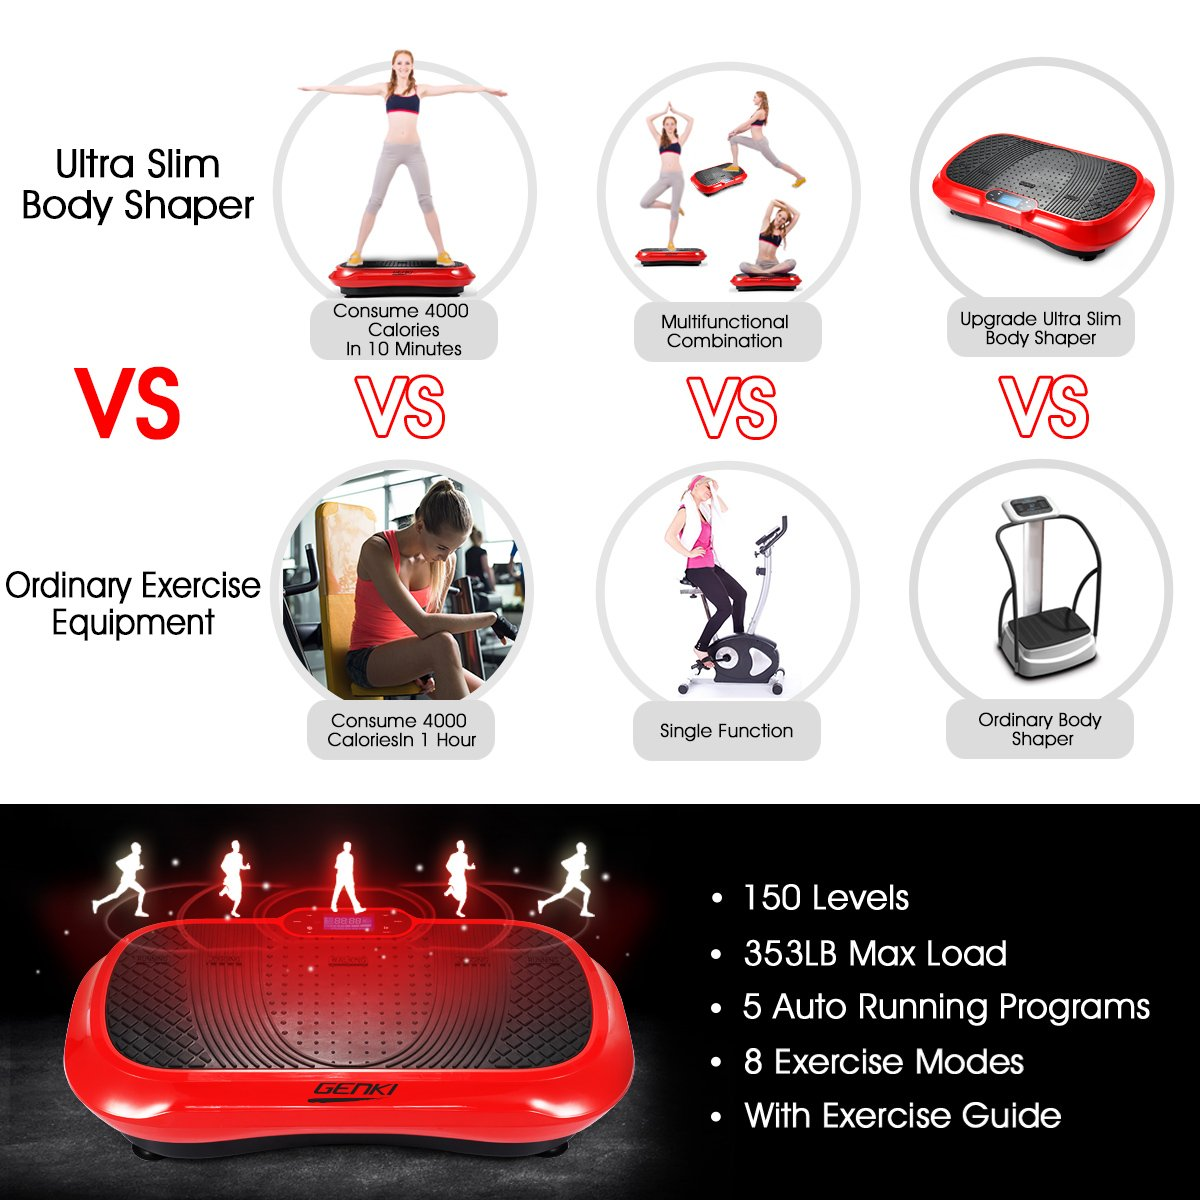 GENKI YD-1010B-R Ultra Slim Vibration Machine Plate Platform Whole Body Shaper Trainer Exercise Red by GENKI (Image #3)